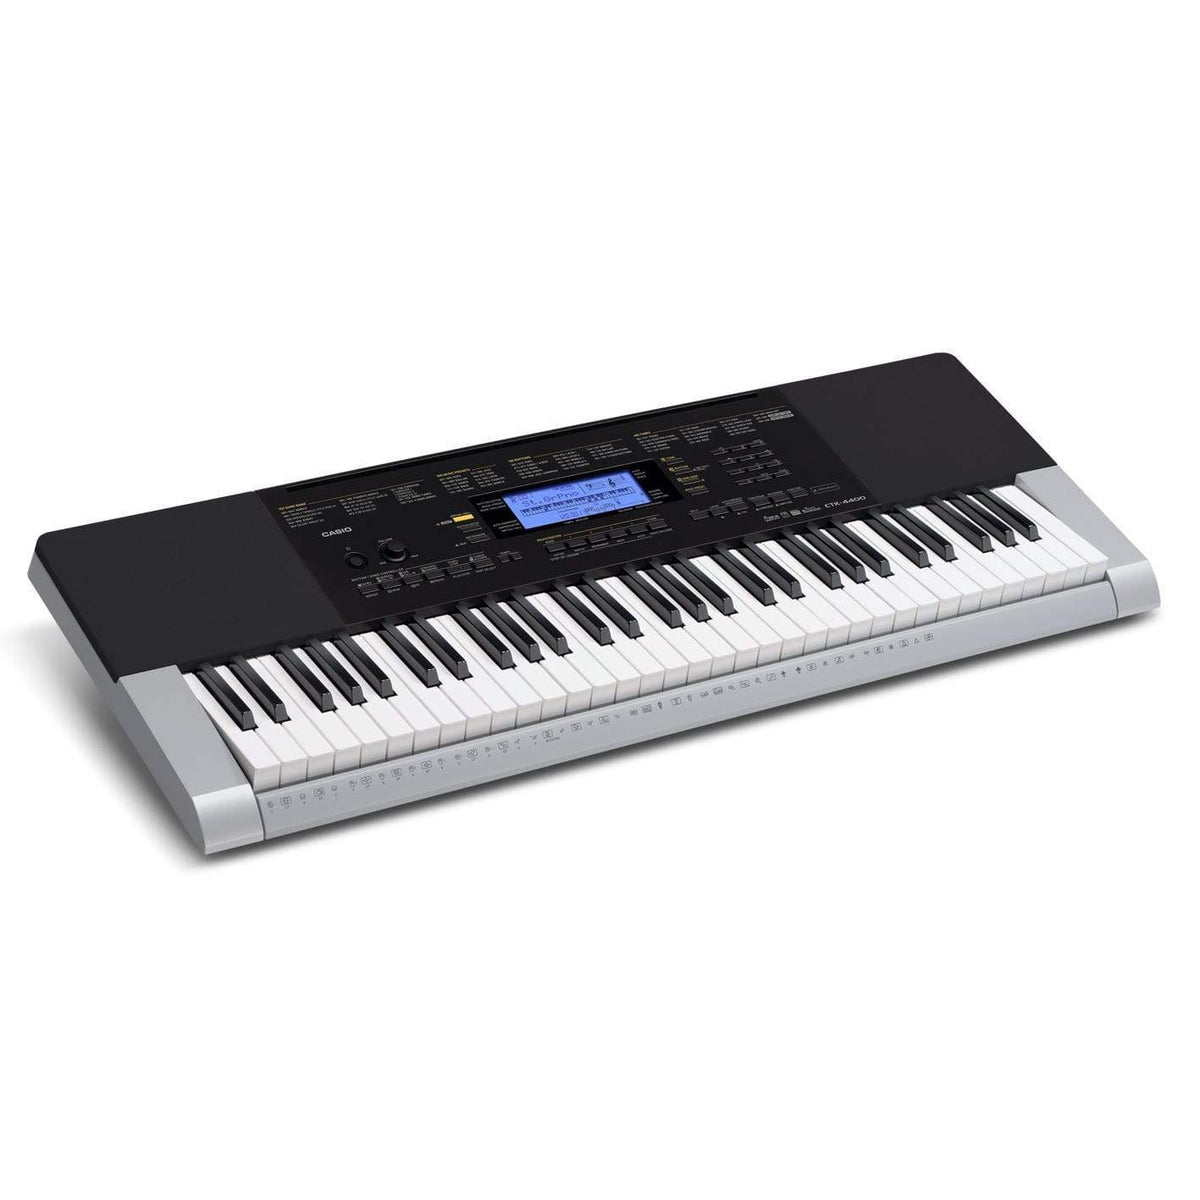 Casio Keyboard Casio CTK-4400 61-Key Portable Keyboard